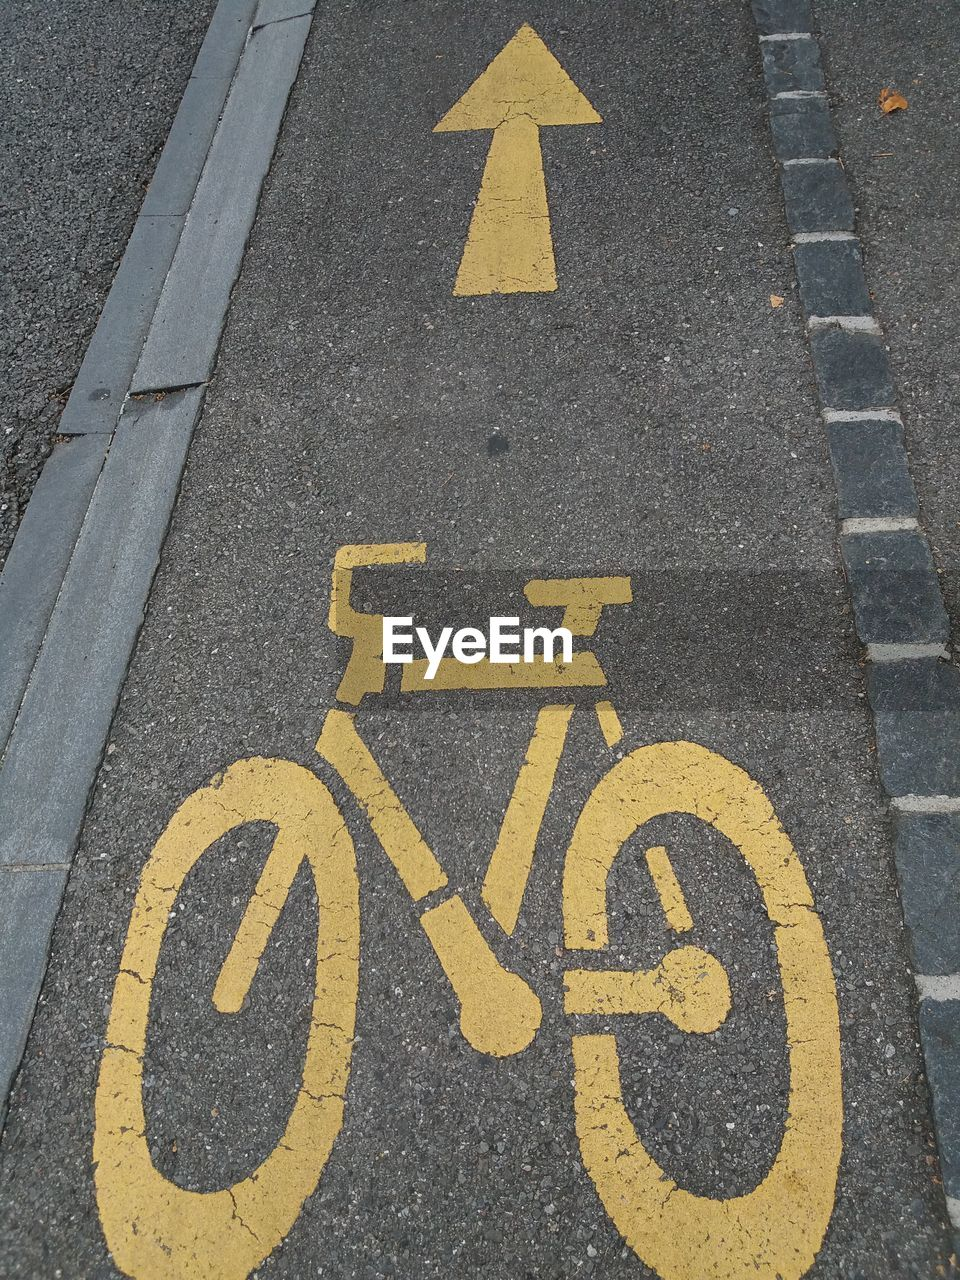 High Angle View Of Yellow Bicycle Lane Sign With Arrow Symbols On Road